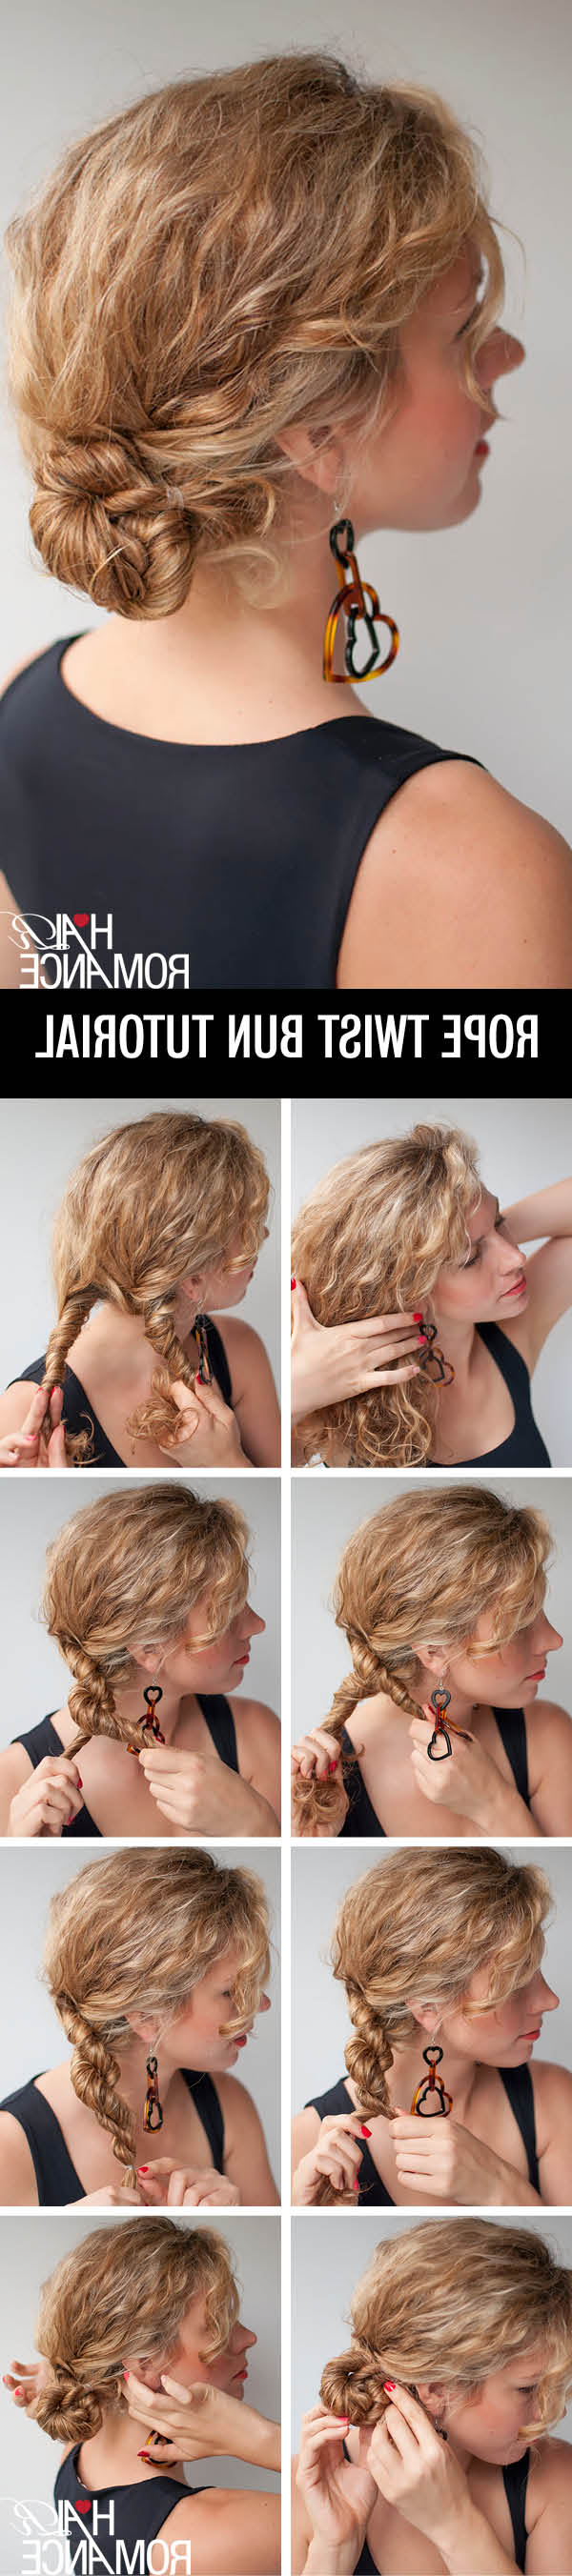 Rope Twist Bun Hairstyle Tutorial In Curly Hair – Hair Romance Within Preferred Rope Twist Updo Hairstyles With Accessories (View 14 of 20)